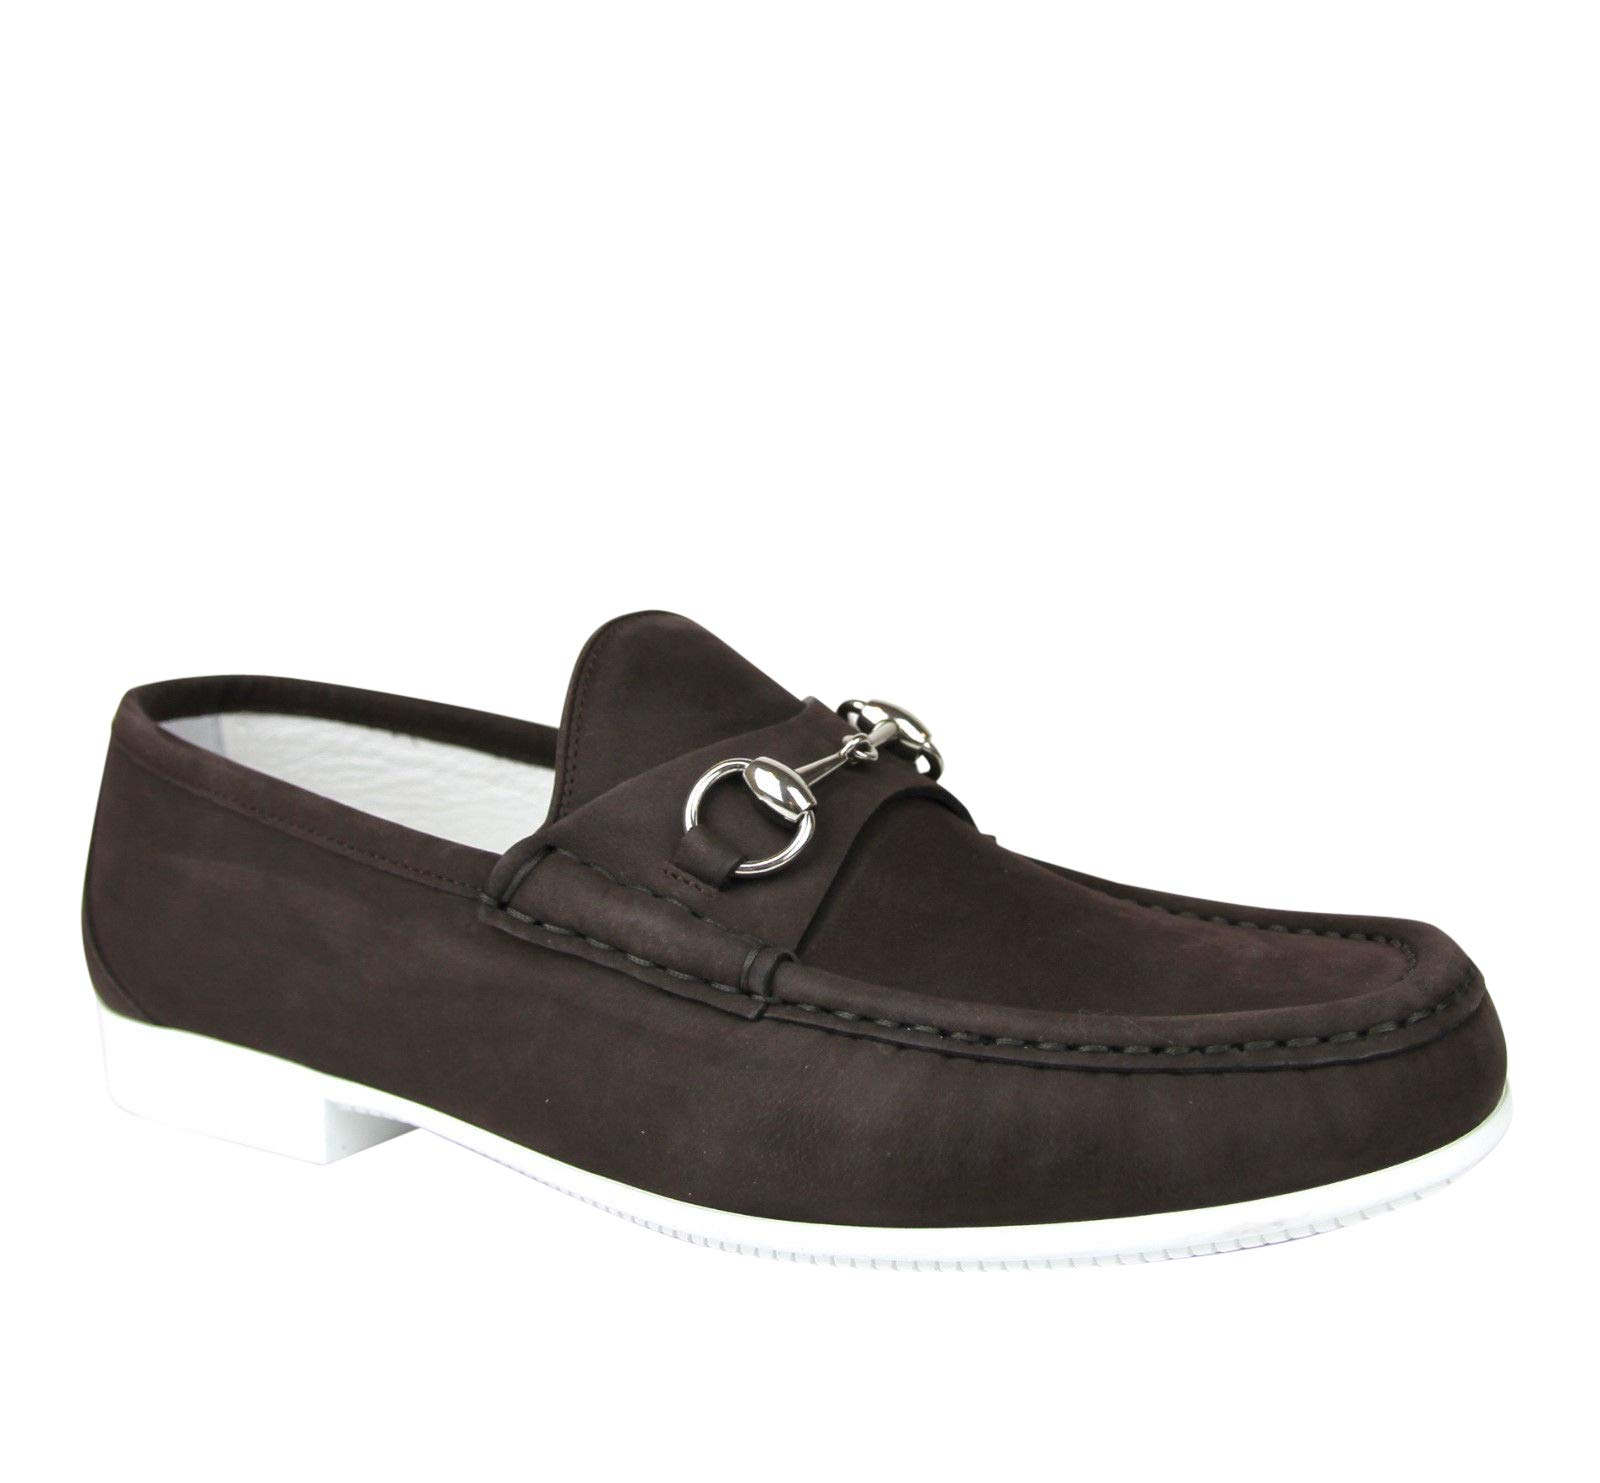 790c3f9c6c9 Gucci Moccasin Dark Brown Suede Horsebit Loafer 337060 BHO00 2140 (8 G   9  US)